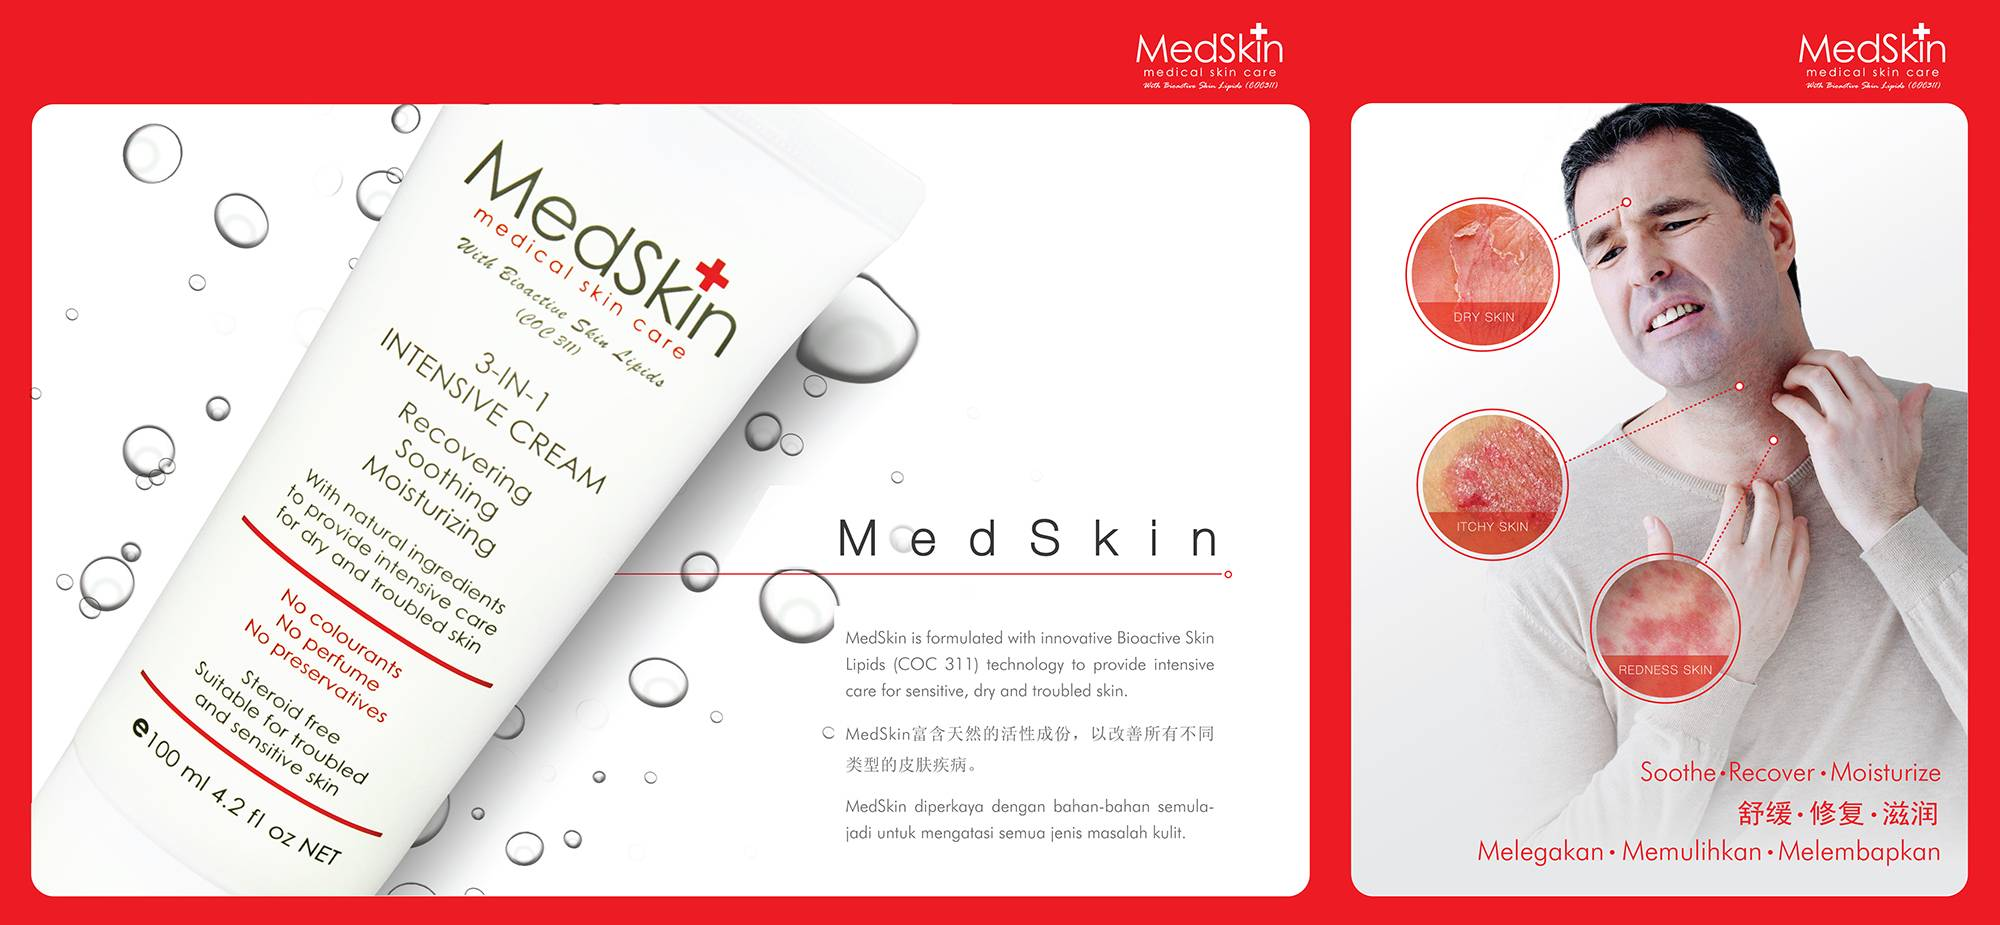 https://www.alivepharmacy.com.my/index.php?route=product/search&search=medskin